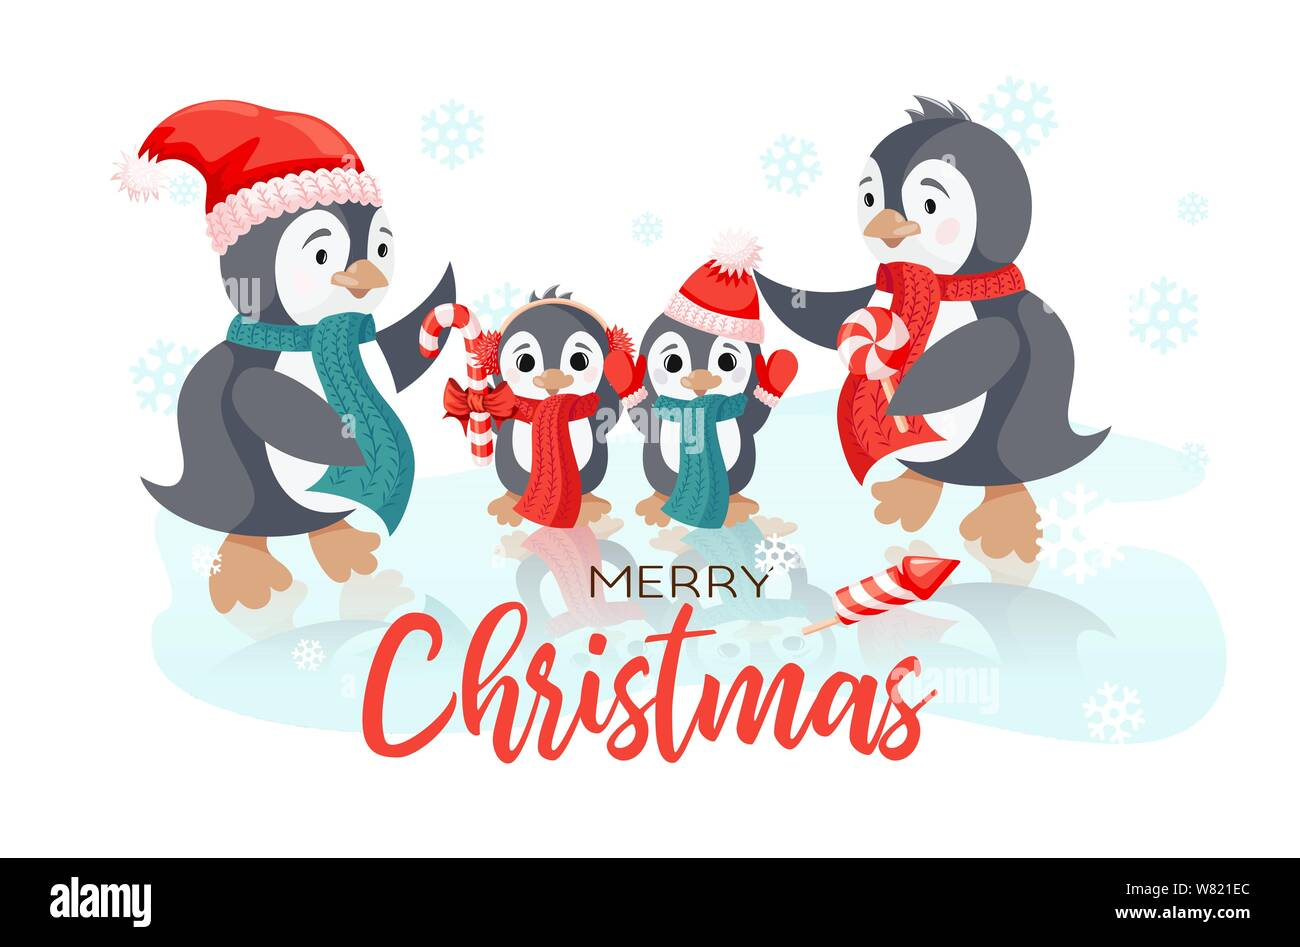 Winter Holiday Vector Christmas Card With Smiling Cute Penguins Family Stock Vector Image Art Alamy